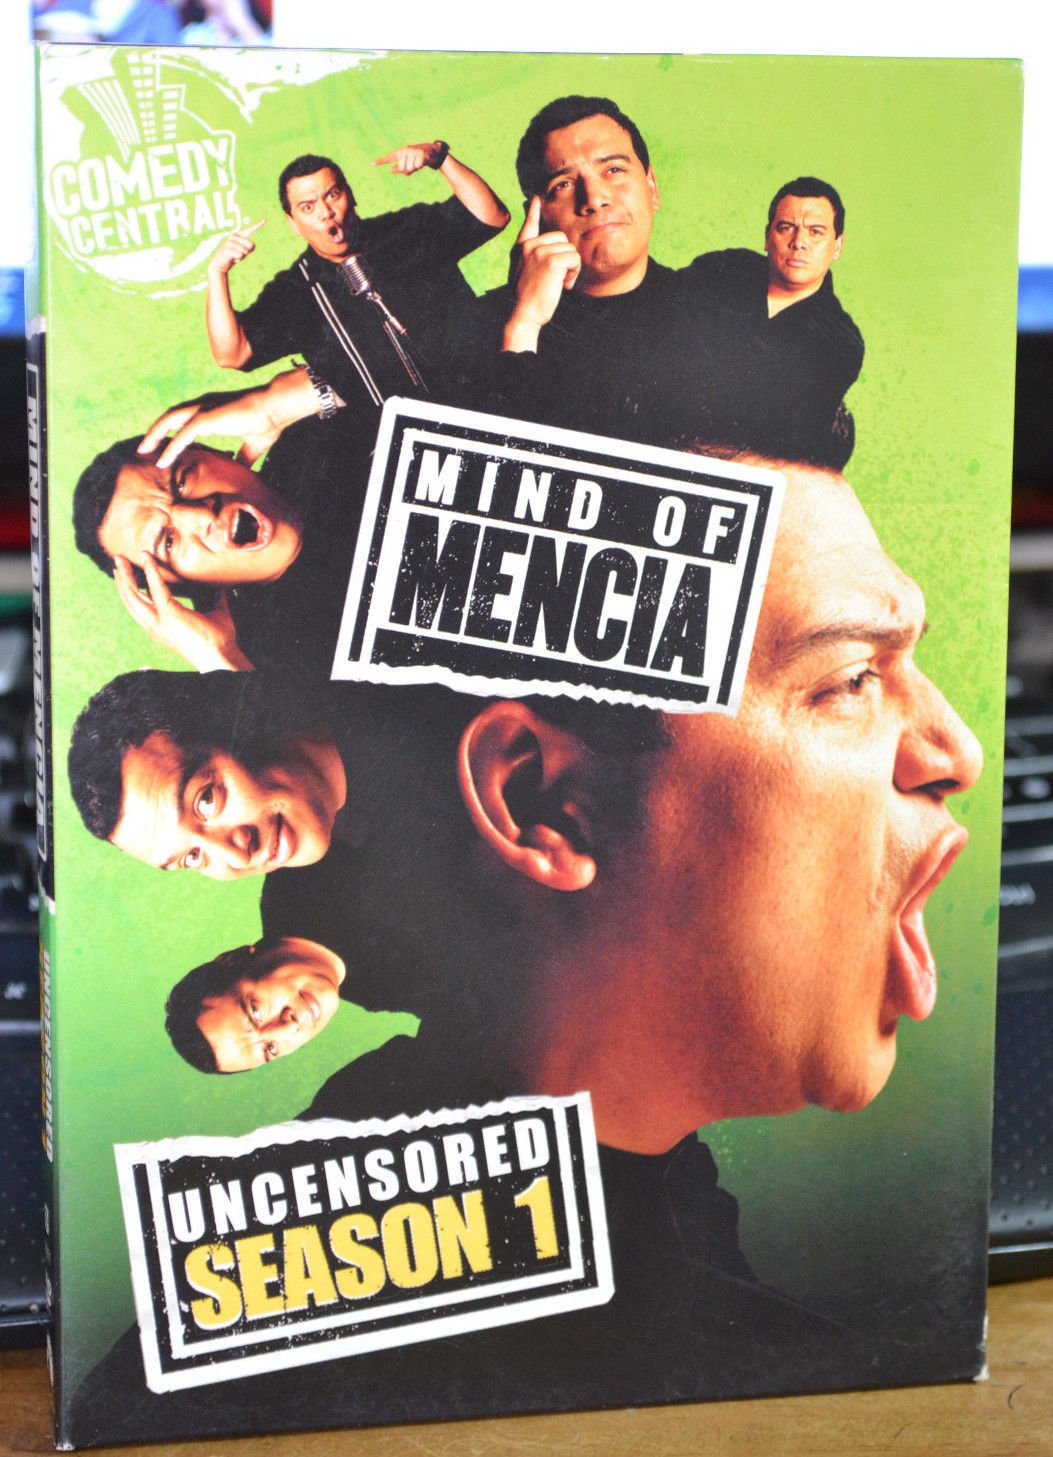 Mind of Mencia - Uncensored Season 1 (DVD, 2006, 2-Disc Set, Checkpoint)